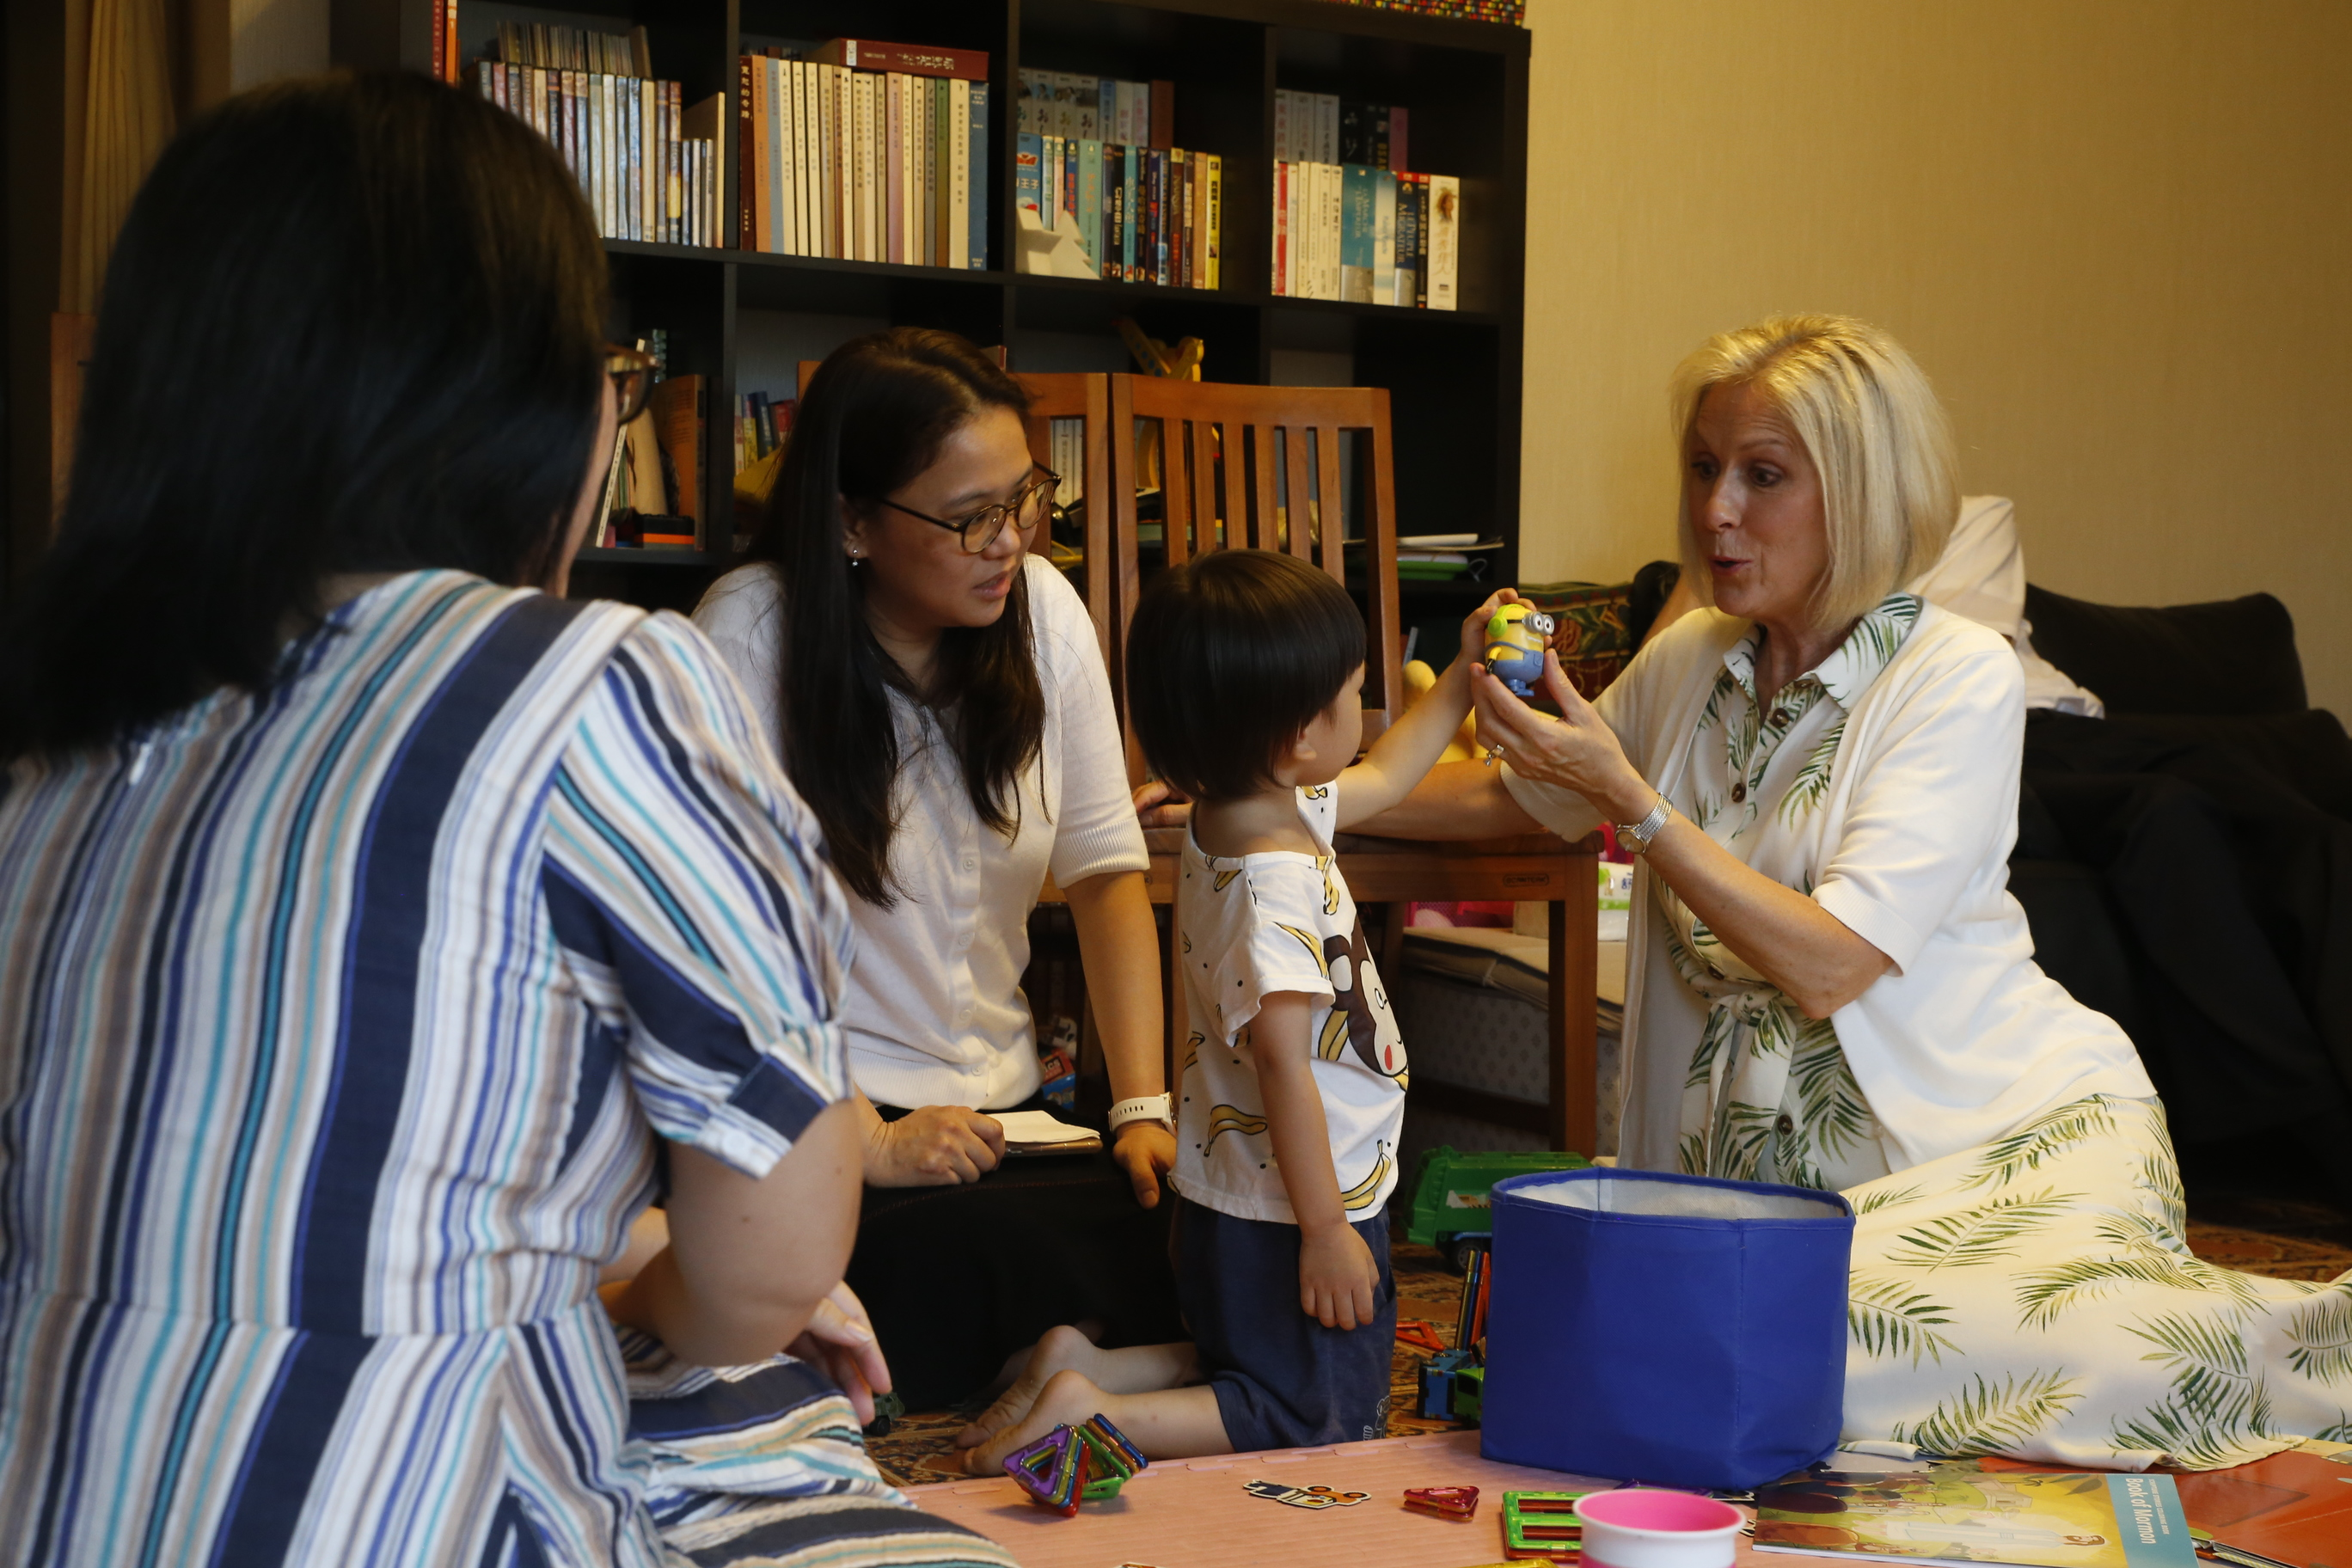 Sister Joy D. Jones, Primary general president, visits the home of members in Taipei, Taiwan, during a tour to the Asia Area from Aug. 17 to 14, 2019.